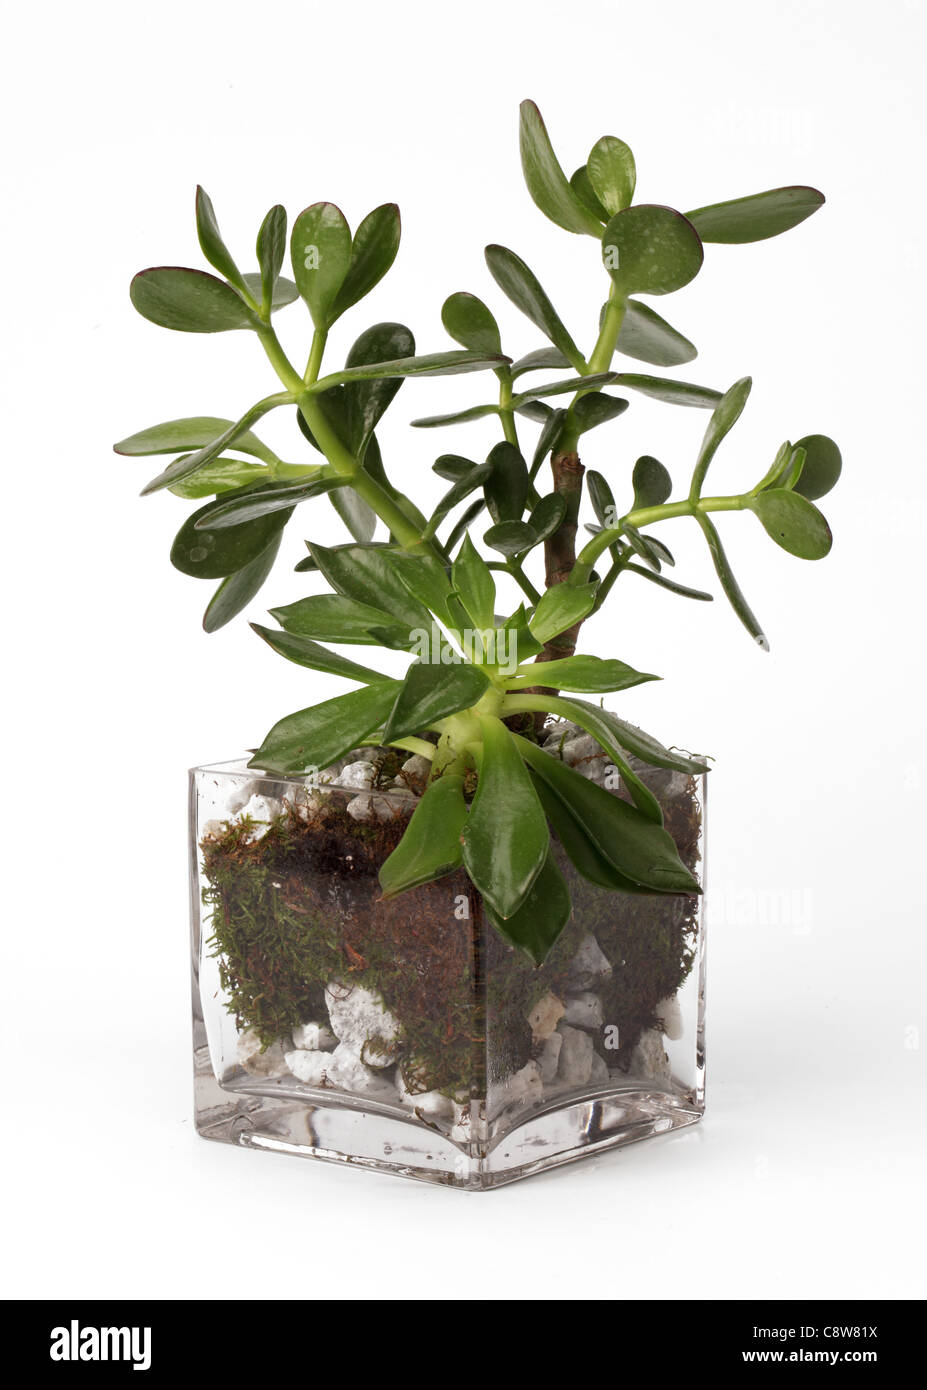 A small plant growing in a glass vase. Jade plant [Crassula ovata] - Stock Image